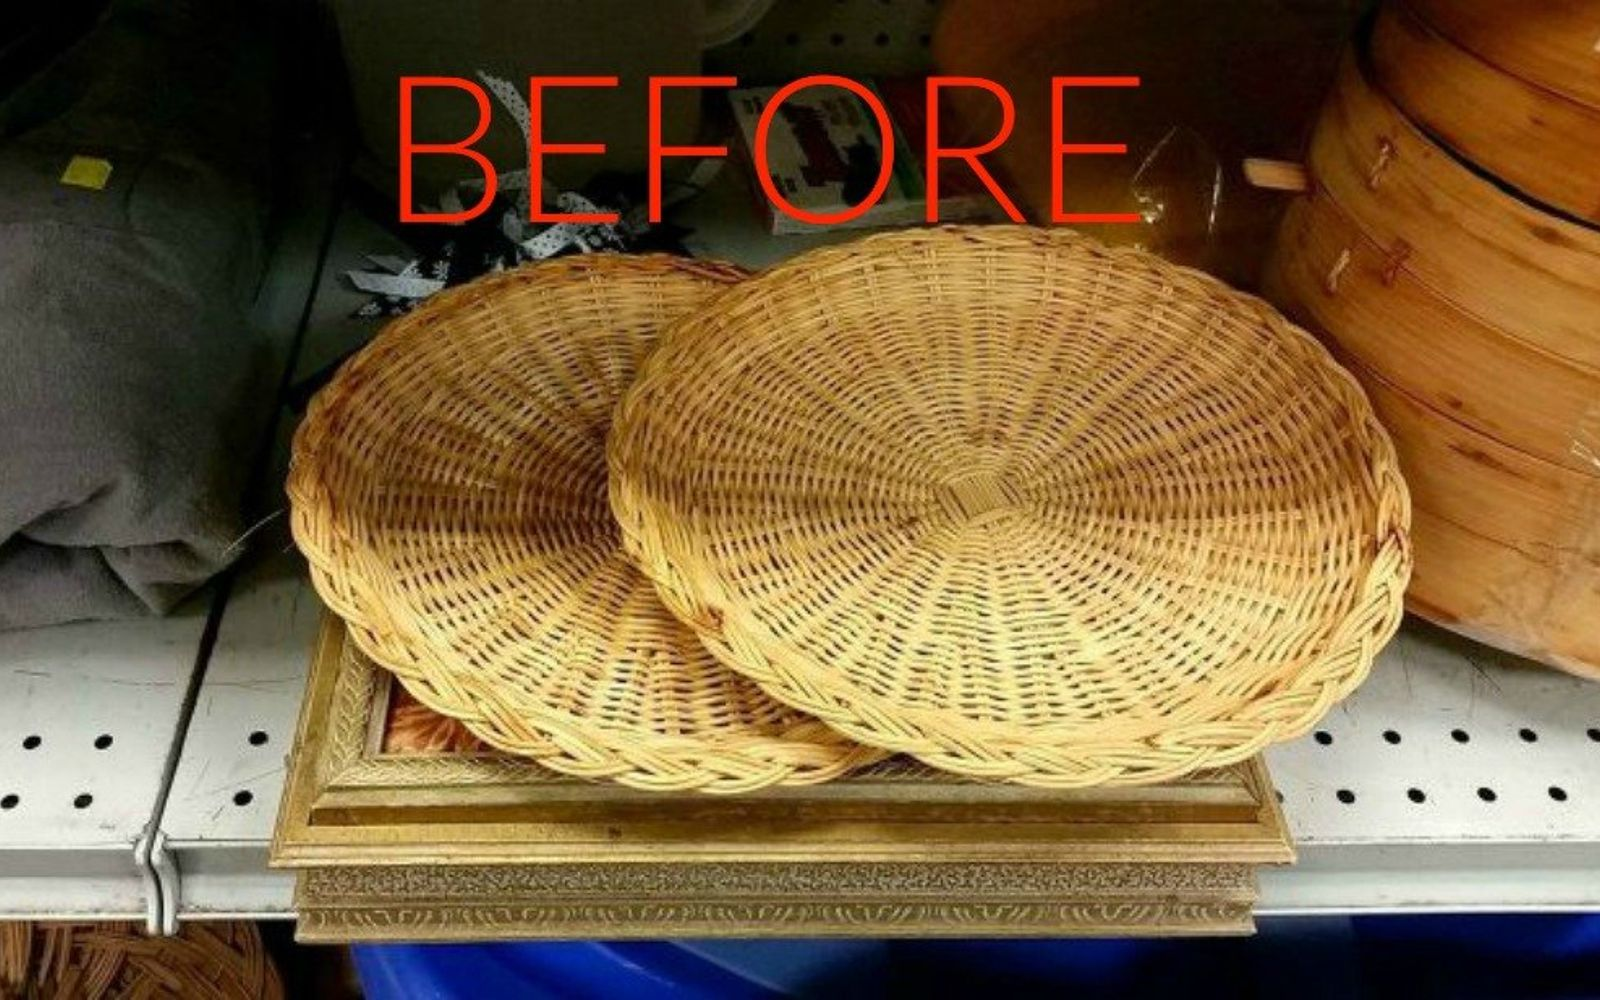 s make wicker trendy again with these brilliant ideas, painted furniture, Before Thrift store paper plate holders